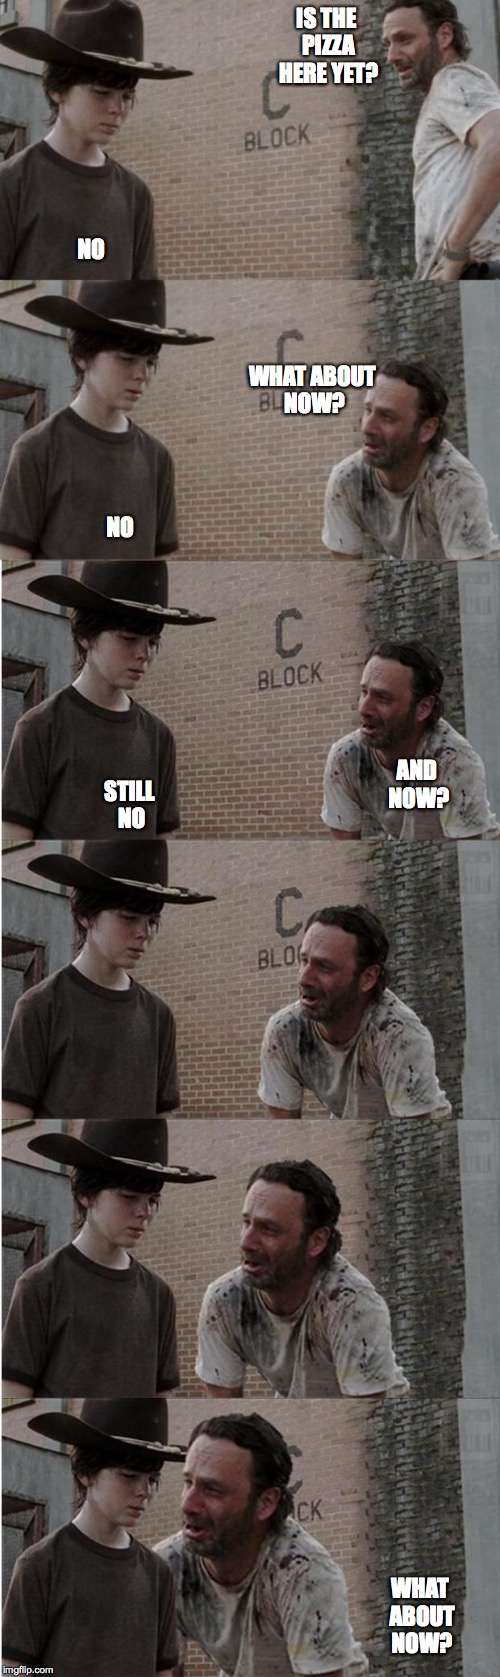 Rick and Carl Longer Meme | IS THE PIZZA HERE YET? WHAT ABOUT NOW? NO WHAT ABOUT NOW? NO AND NOW? STILL NO | image tagged in memes,rick and carl longer | made w/ Imgflip meme maker